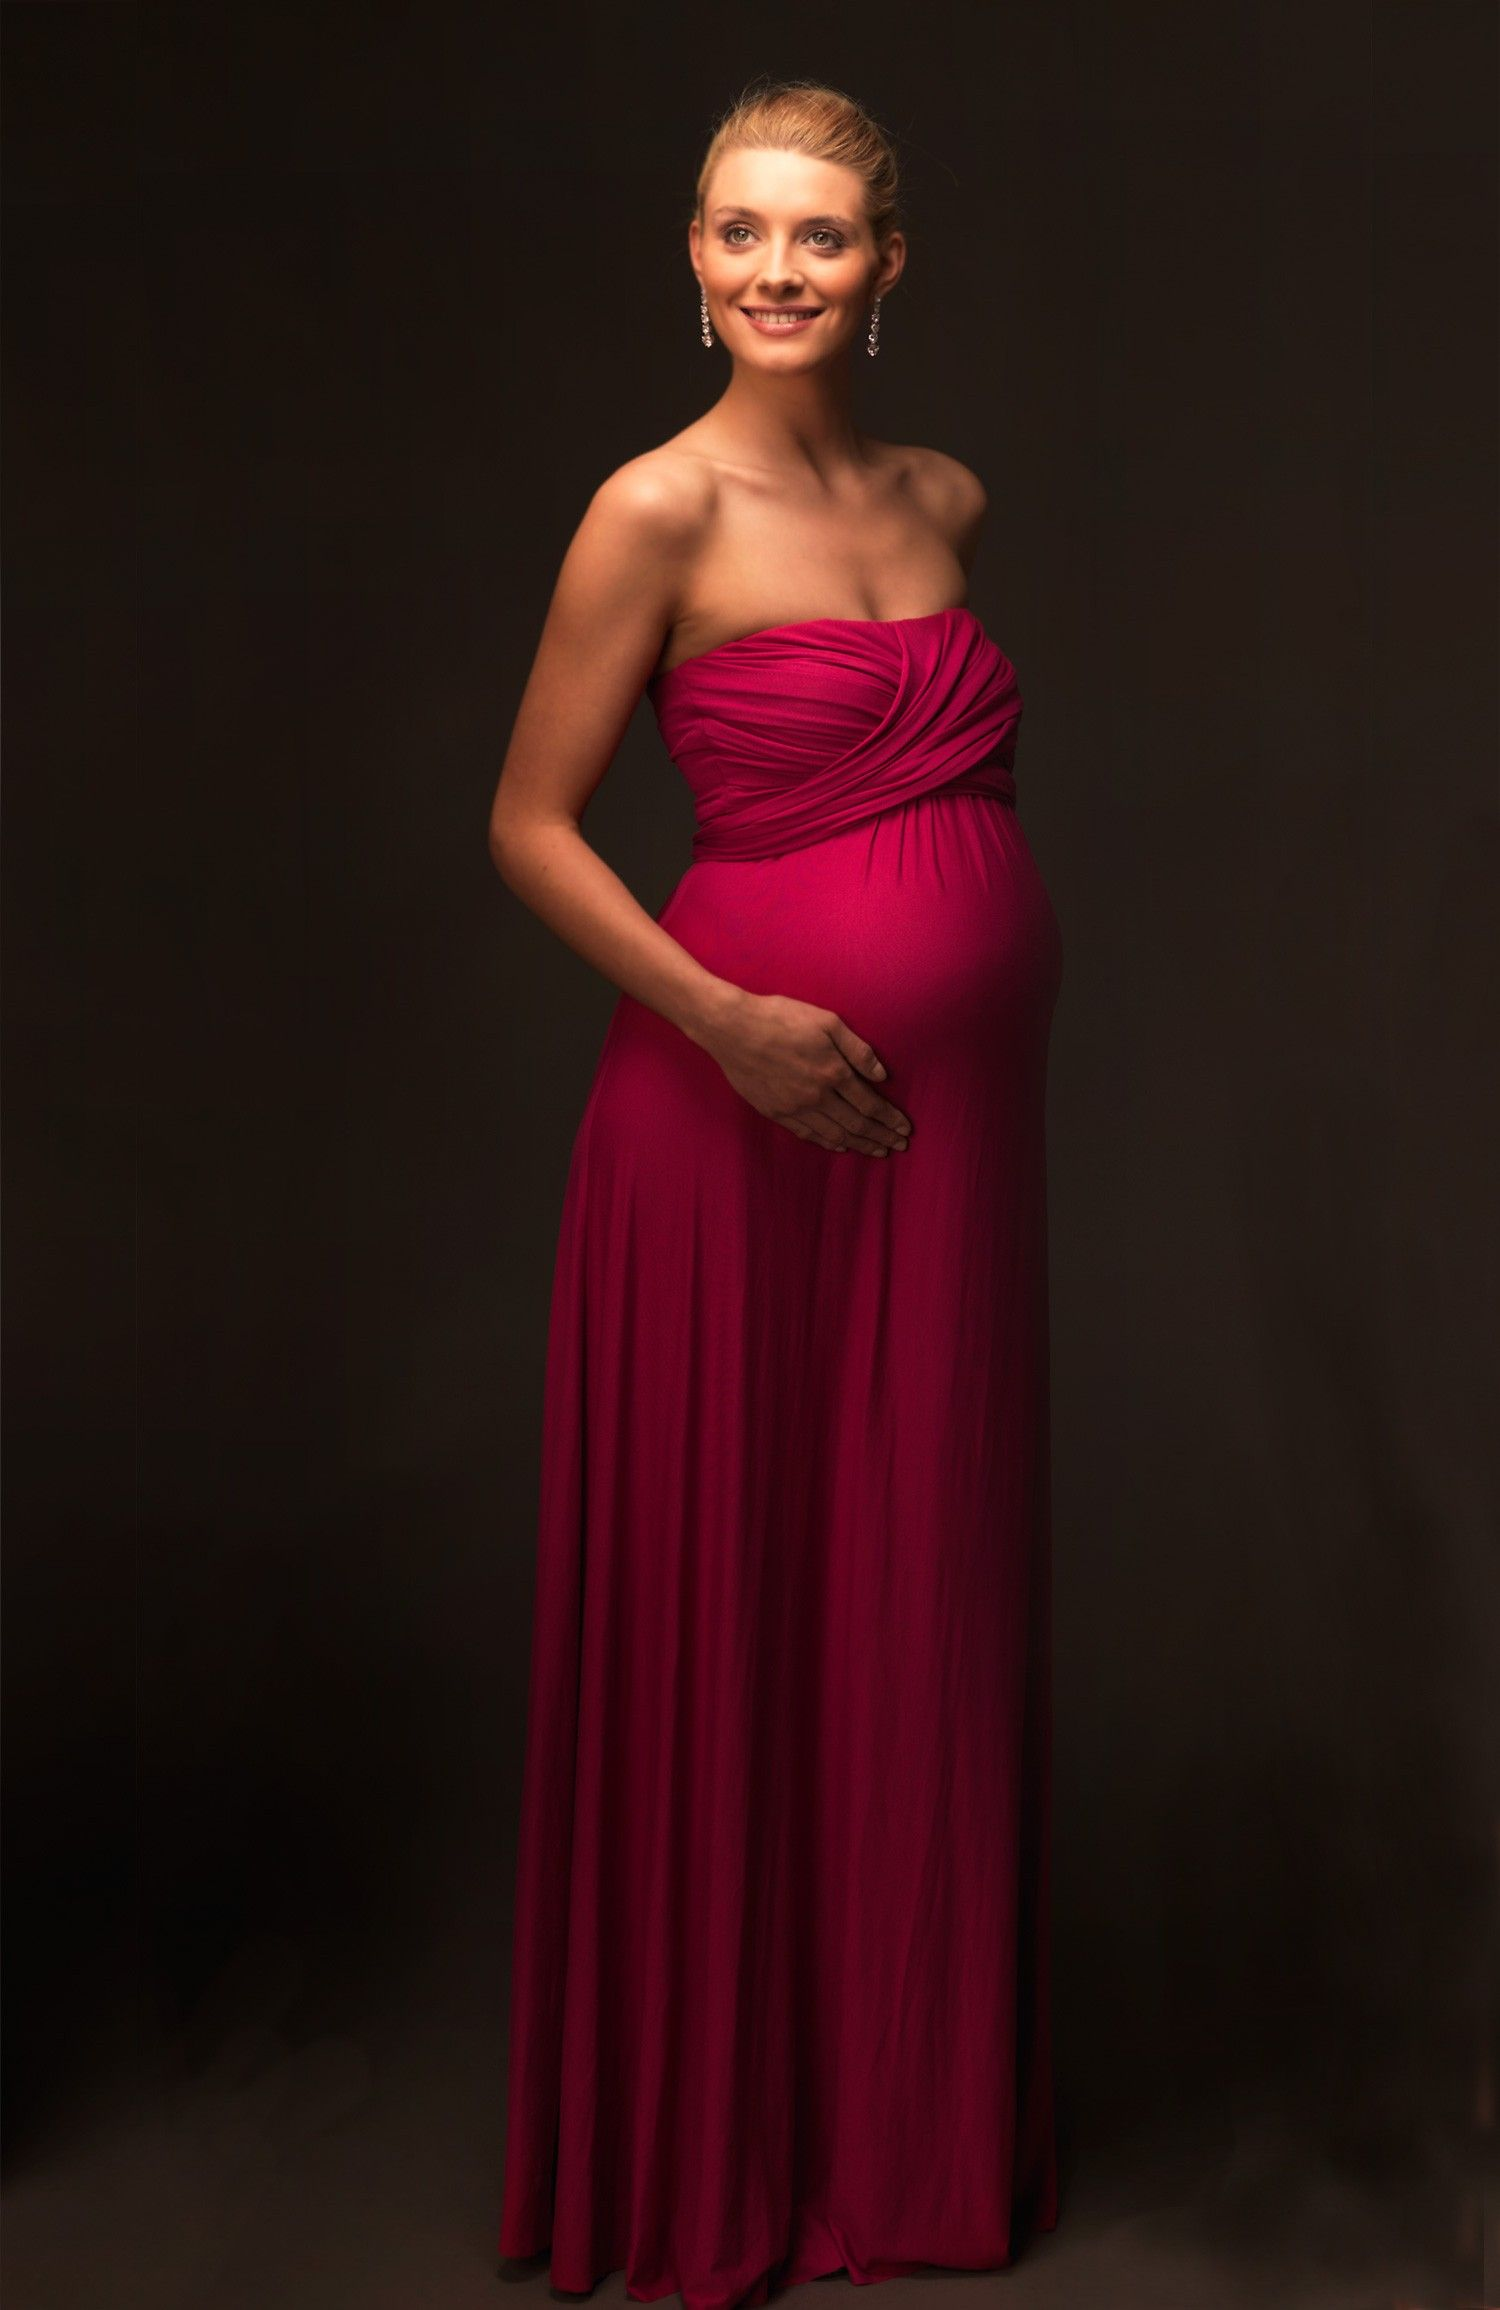 Maxi strapless maternity dress sale 109 wear it multiple ways maxi strapless maternity dress sale 109 wear it multiple ways also in black ombrellifo Image collections